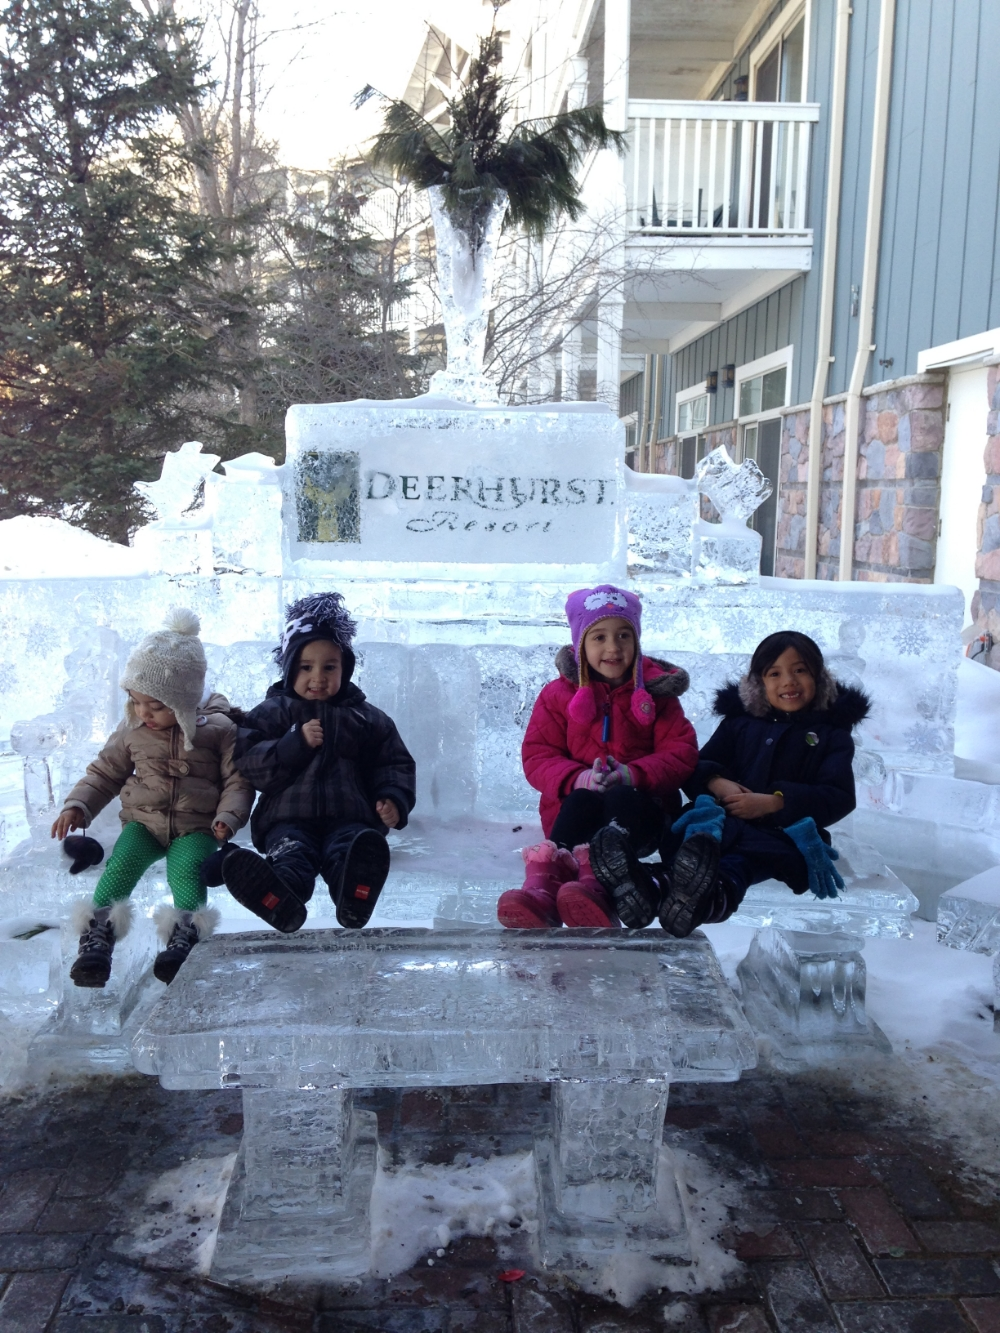 Walked to the DeerHurst Resort Main building for swimming and March break activities